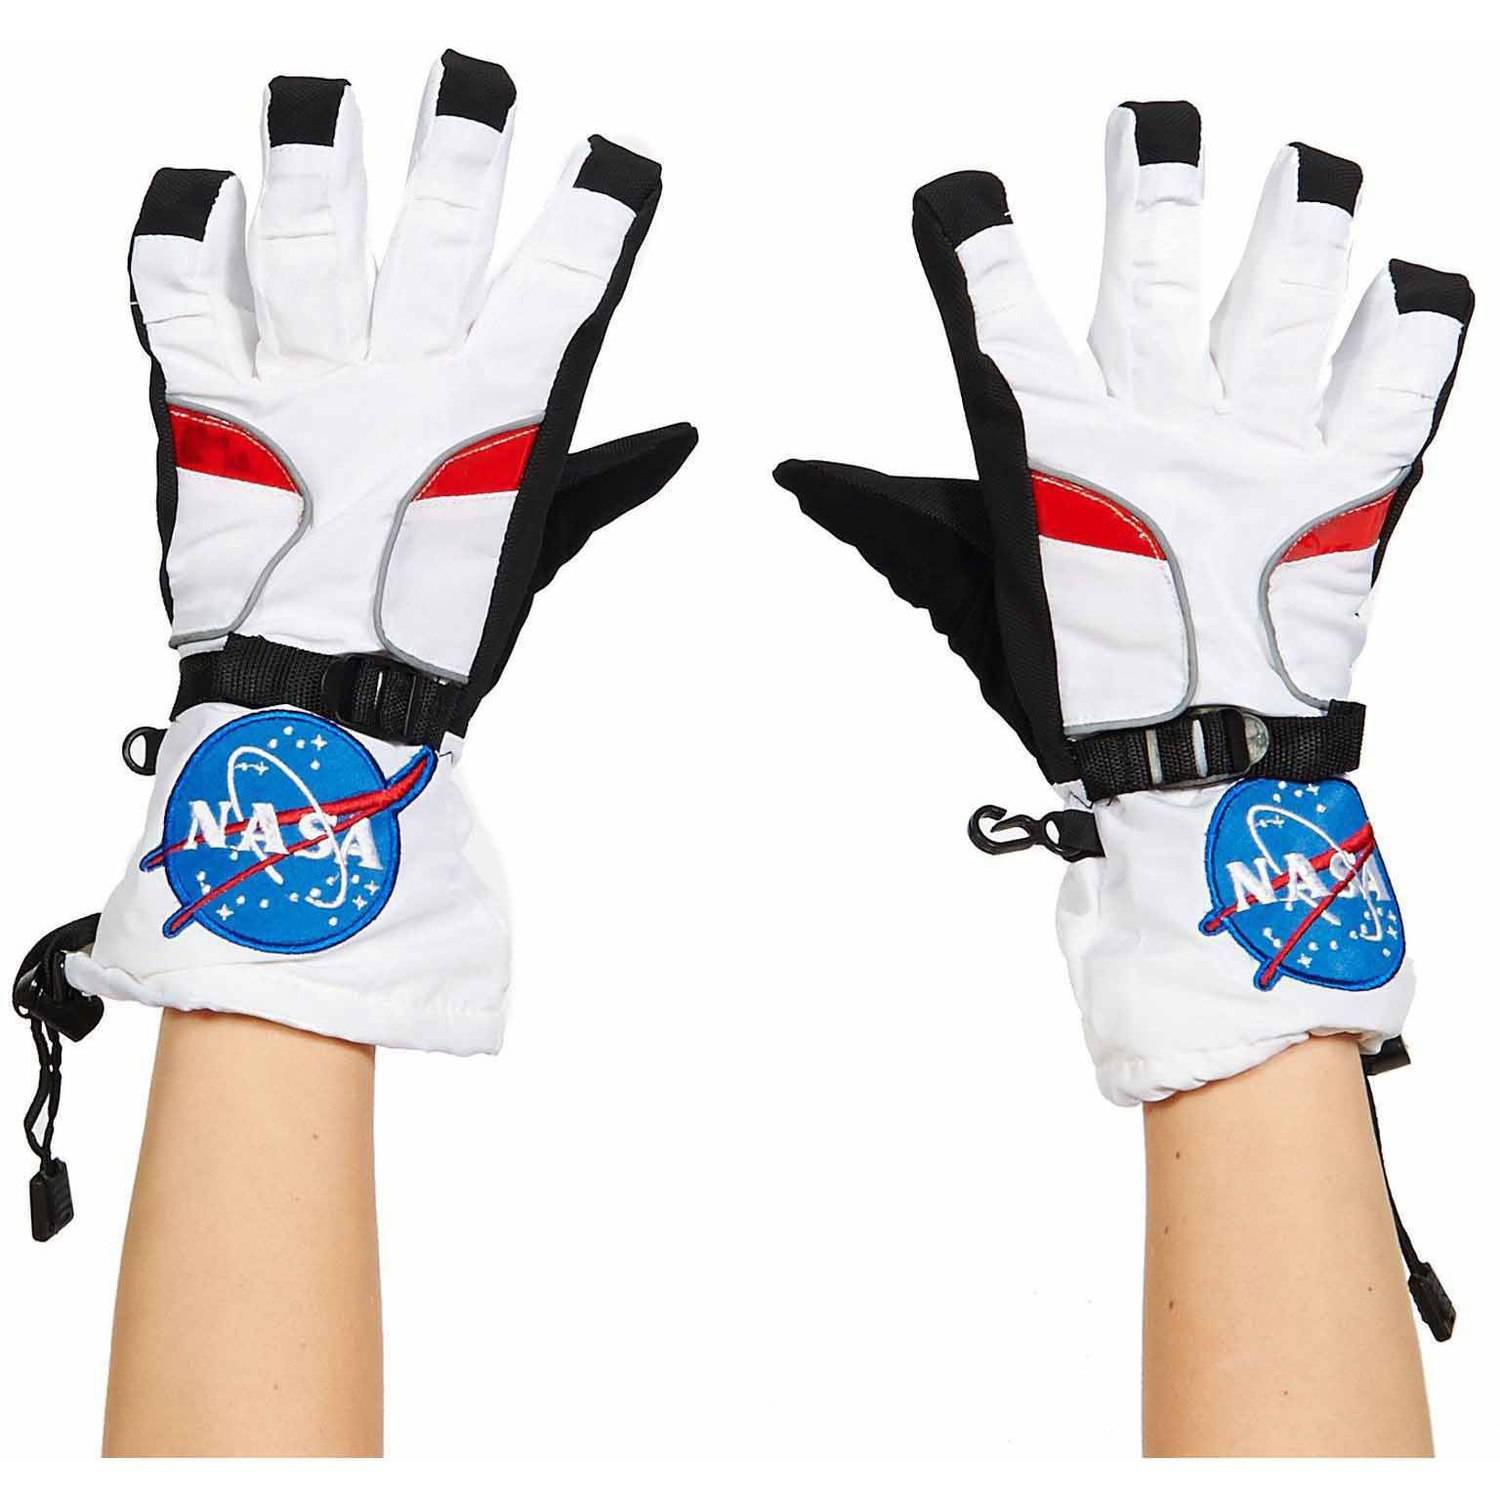 NASA Jr. Astronaut Gloves Boys' Child Halloween Accessory